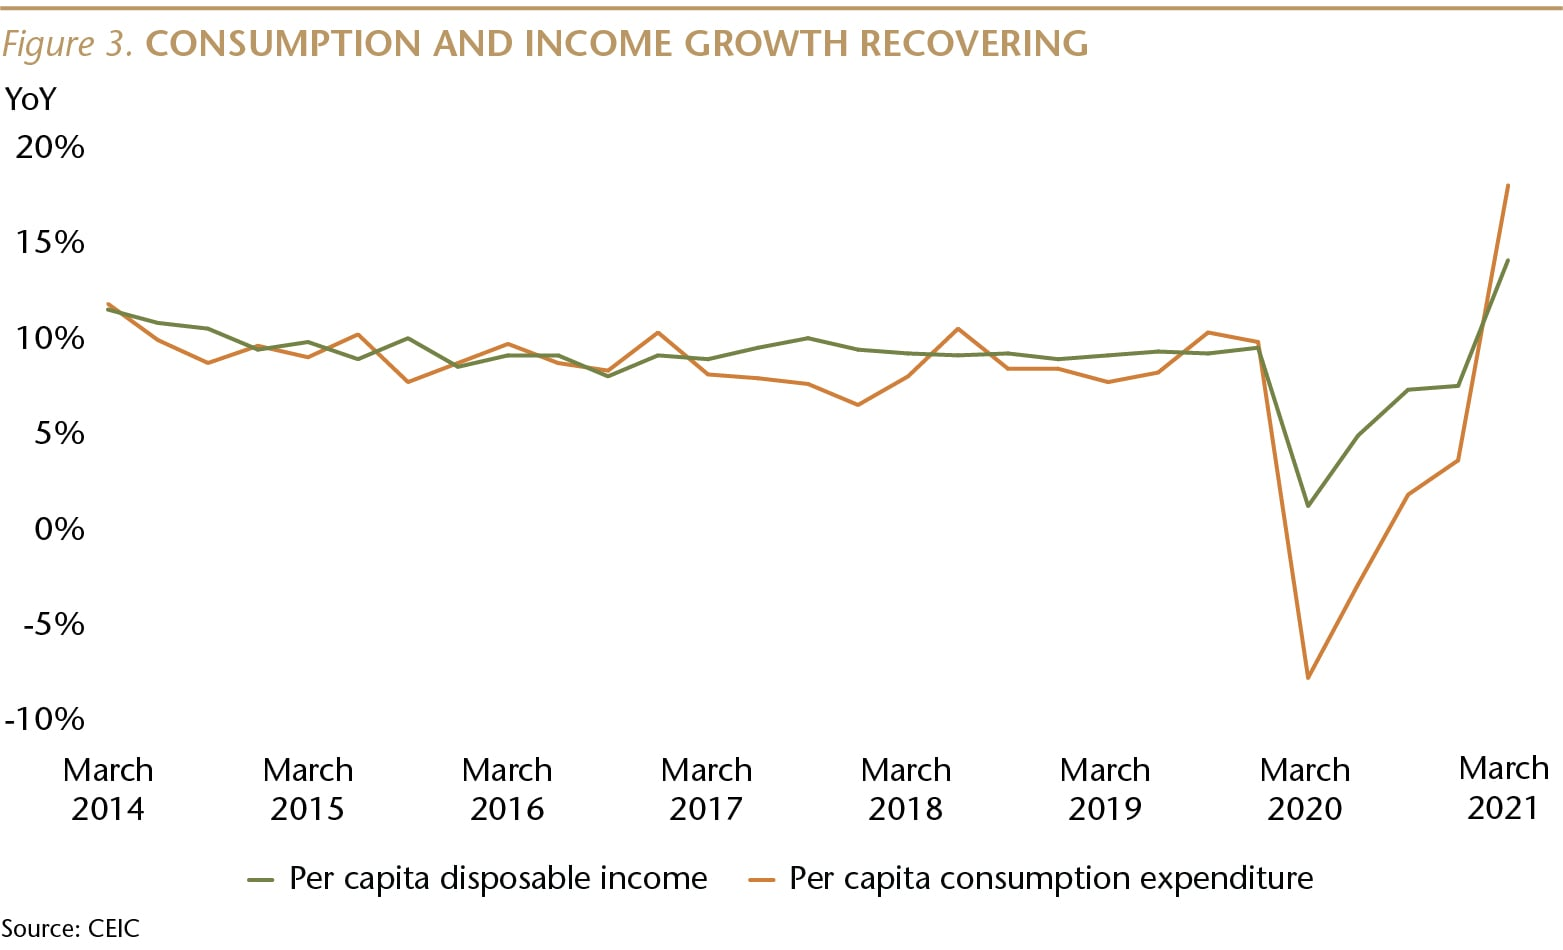 SI075_Figure 3_Consumption and Income Recovering_WEB-01-min.jpg